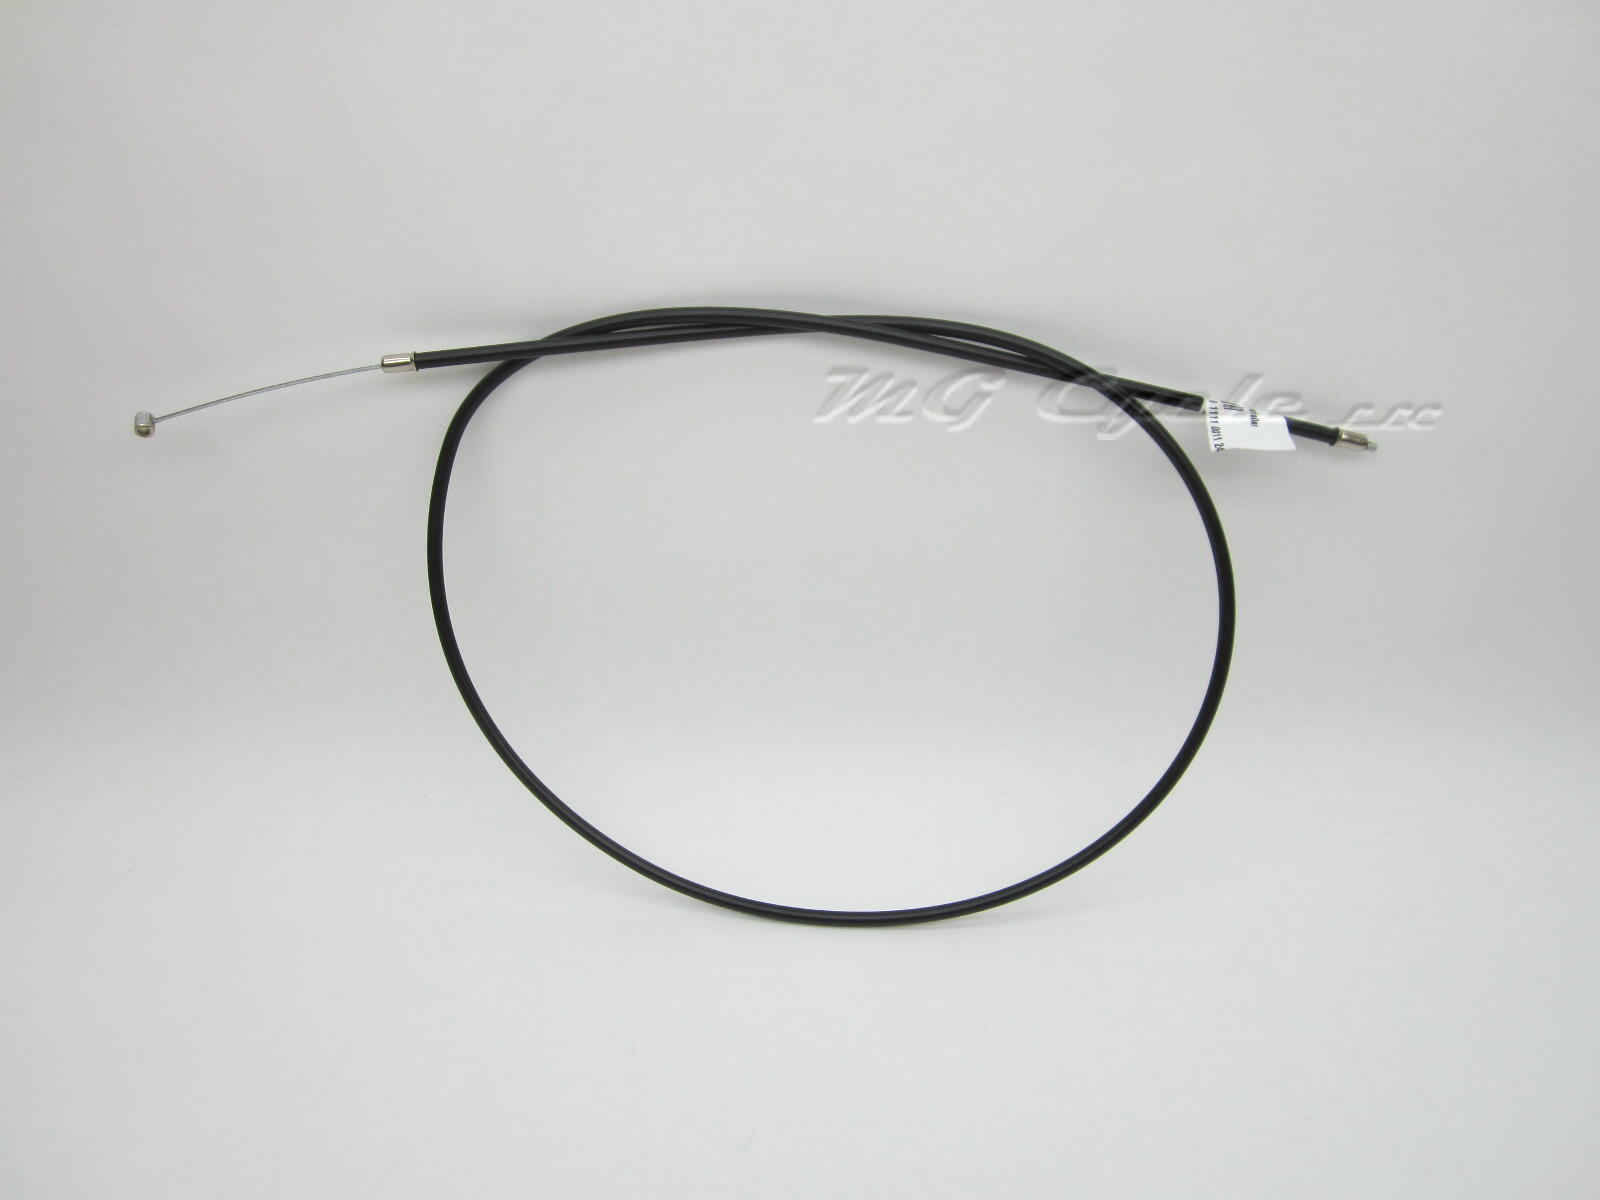 upper choke cable, California 1100